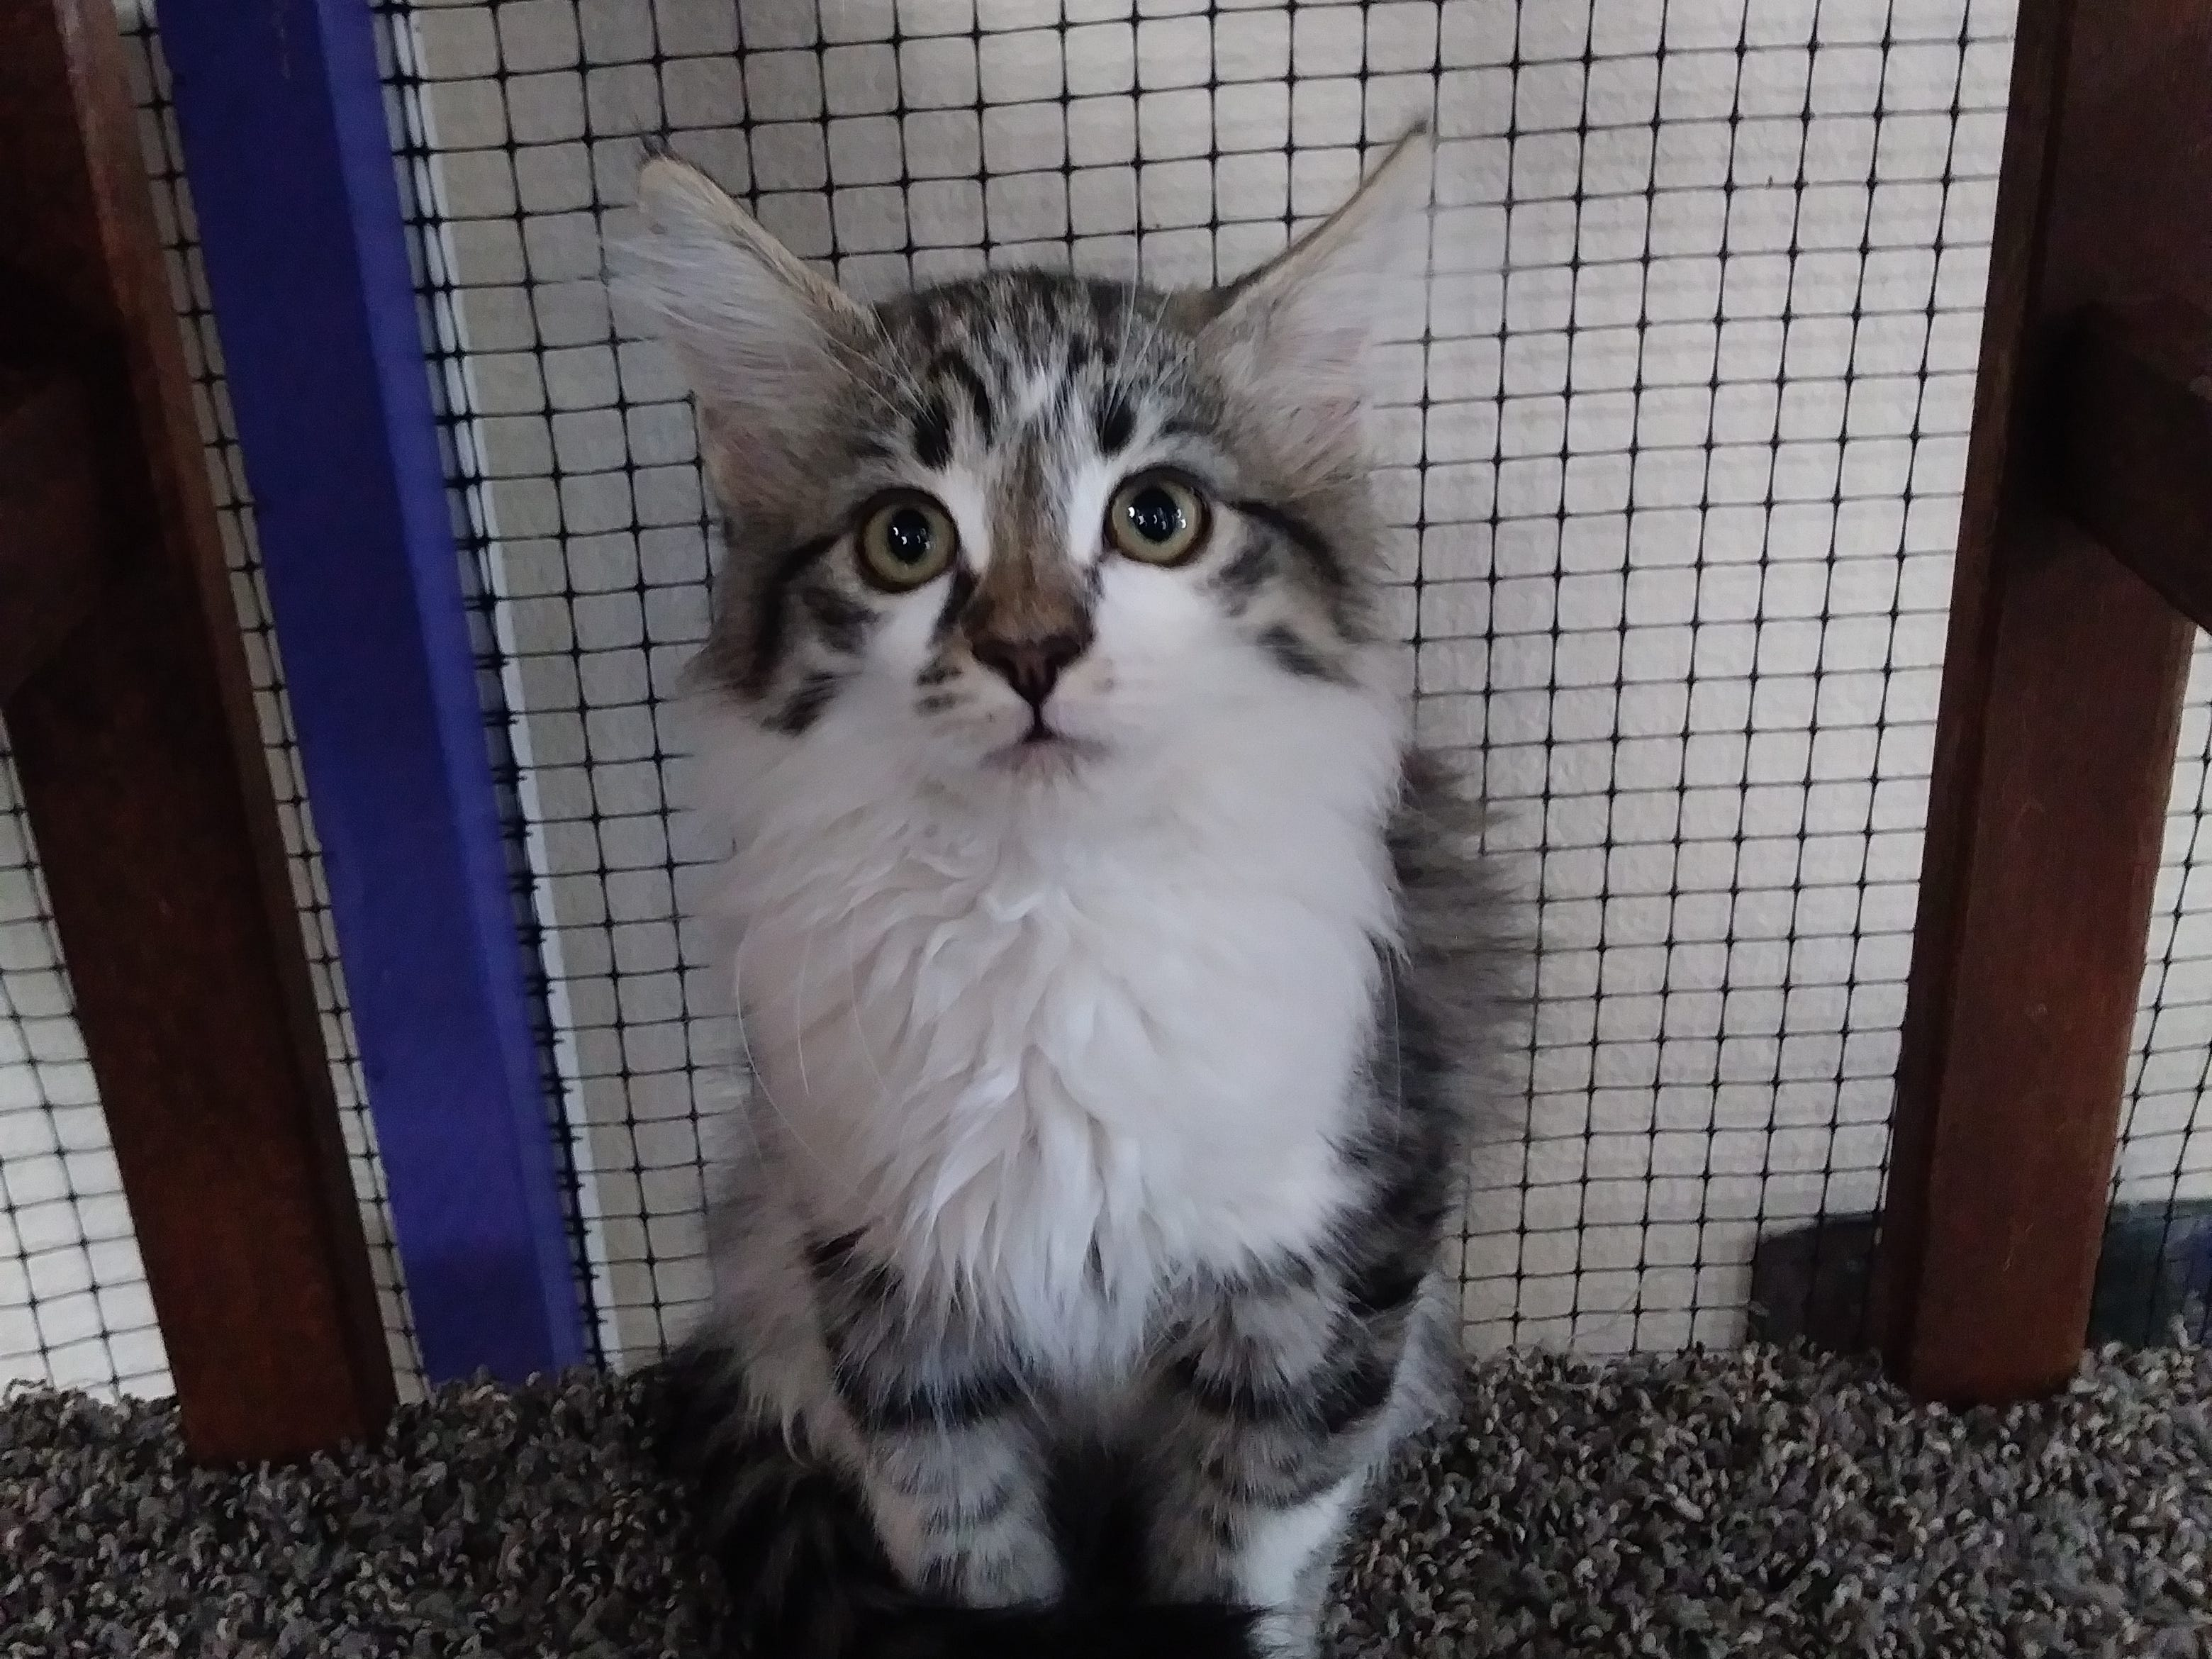 Starla is a beautiful, 4-month-old, long-haired female kitten. She's a little shy, but warms up to her new surroundings. Email Spay Neuter and Protect at Snap.spayneuterandprotect@gmail.com. Call 209-6966.